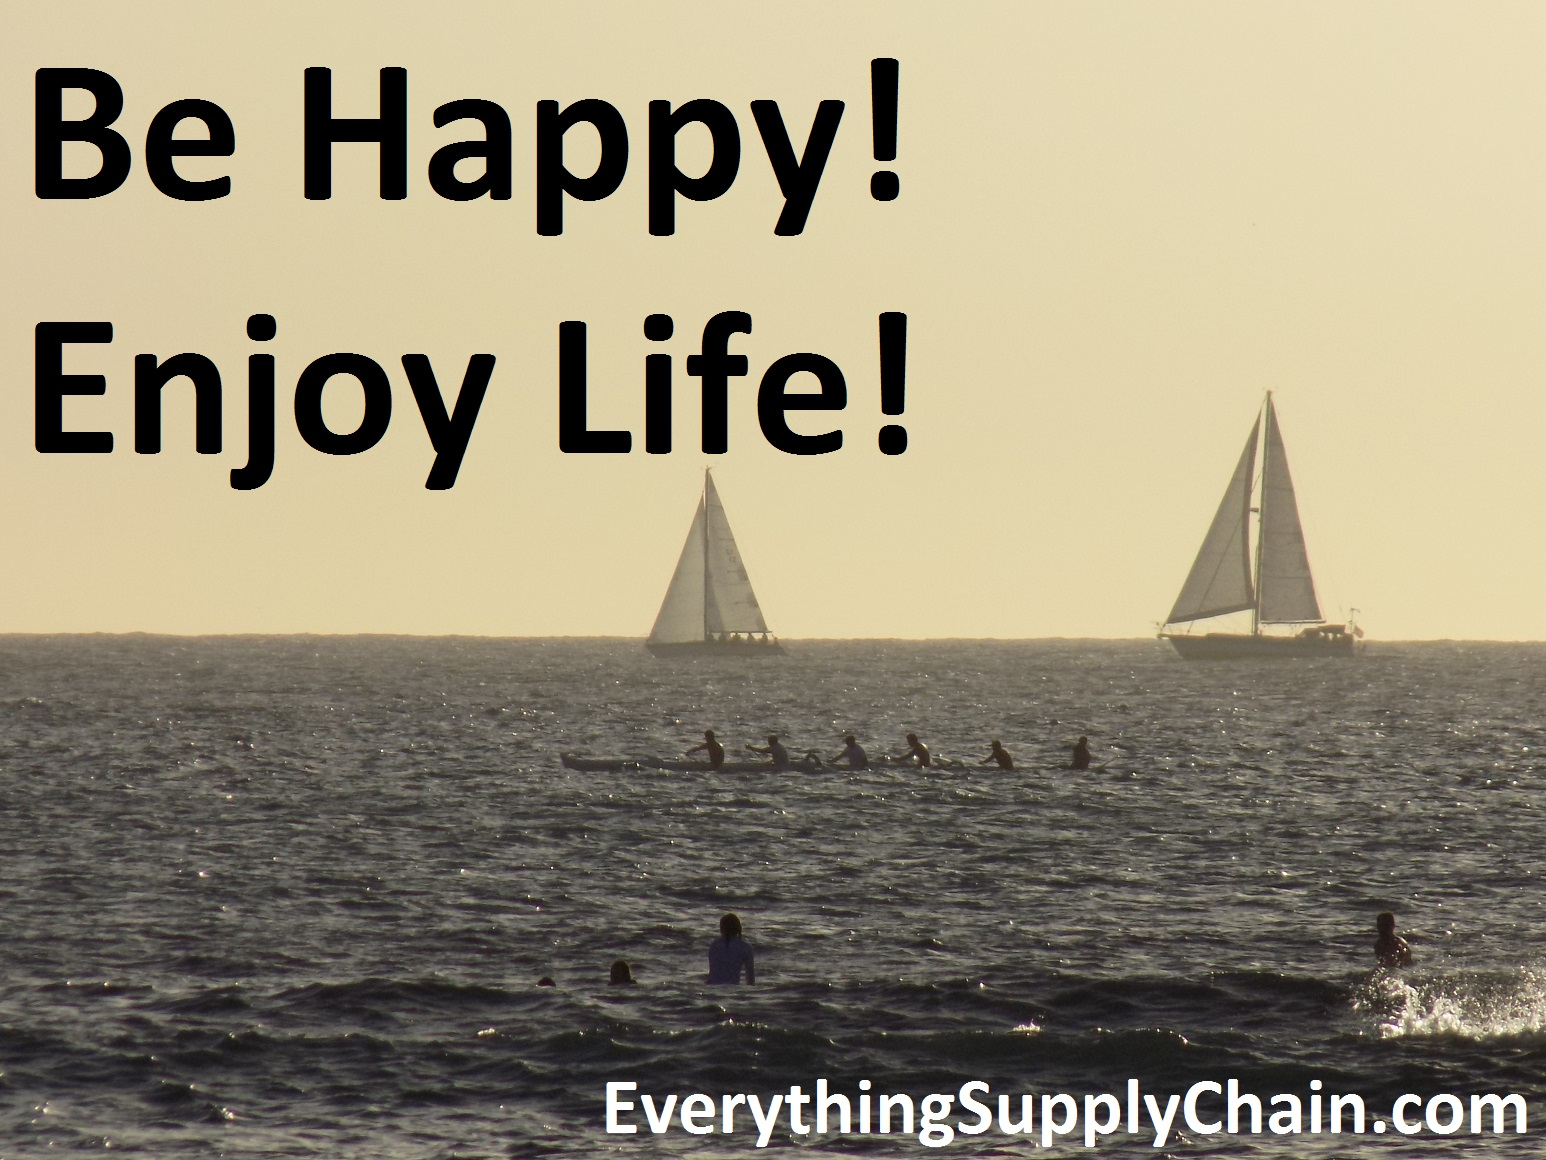 Quotes About Enjoying Life Be Happy Make Your Life Great It Is About Attitude Everything Supply Chain